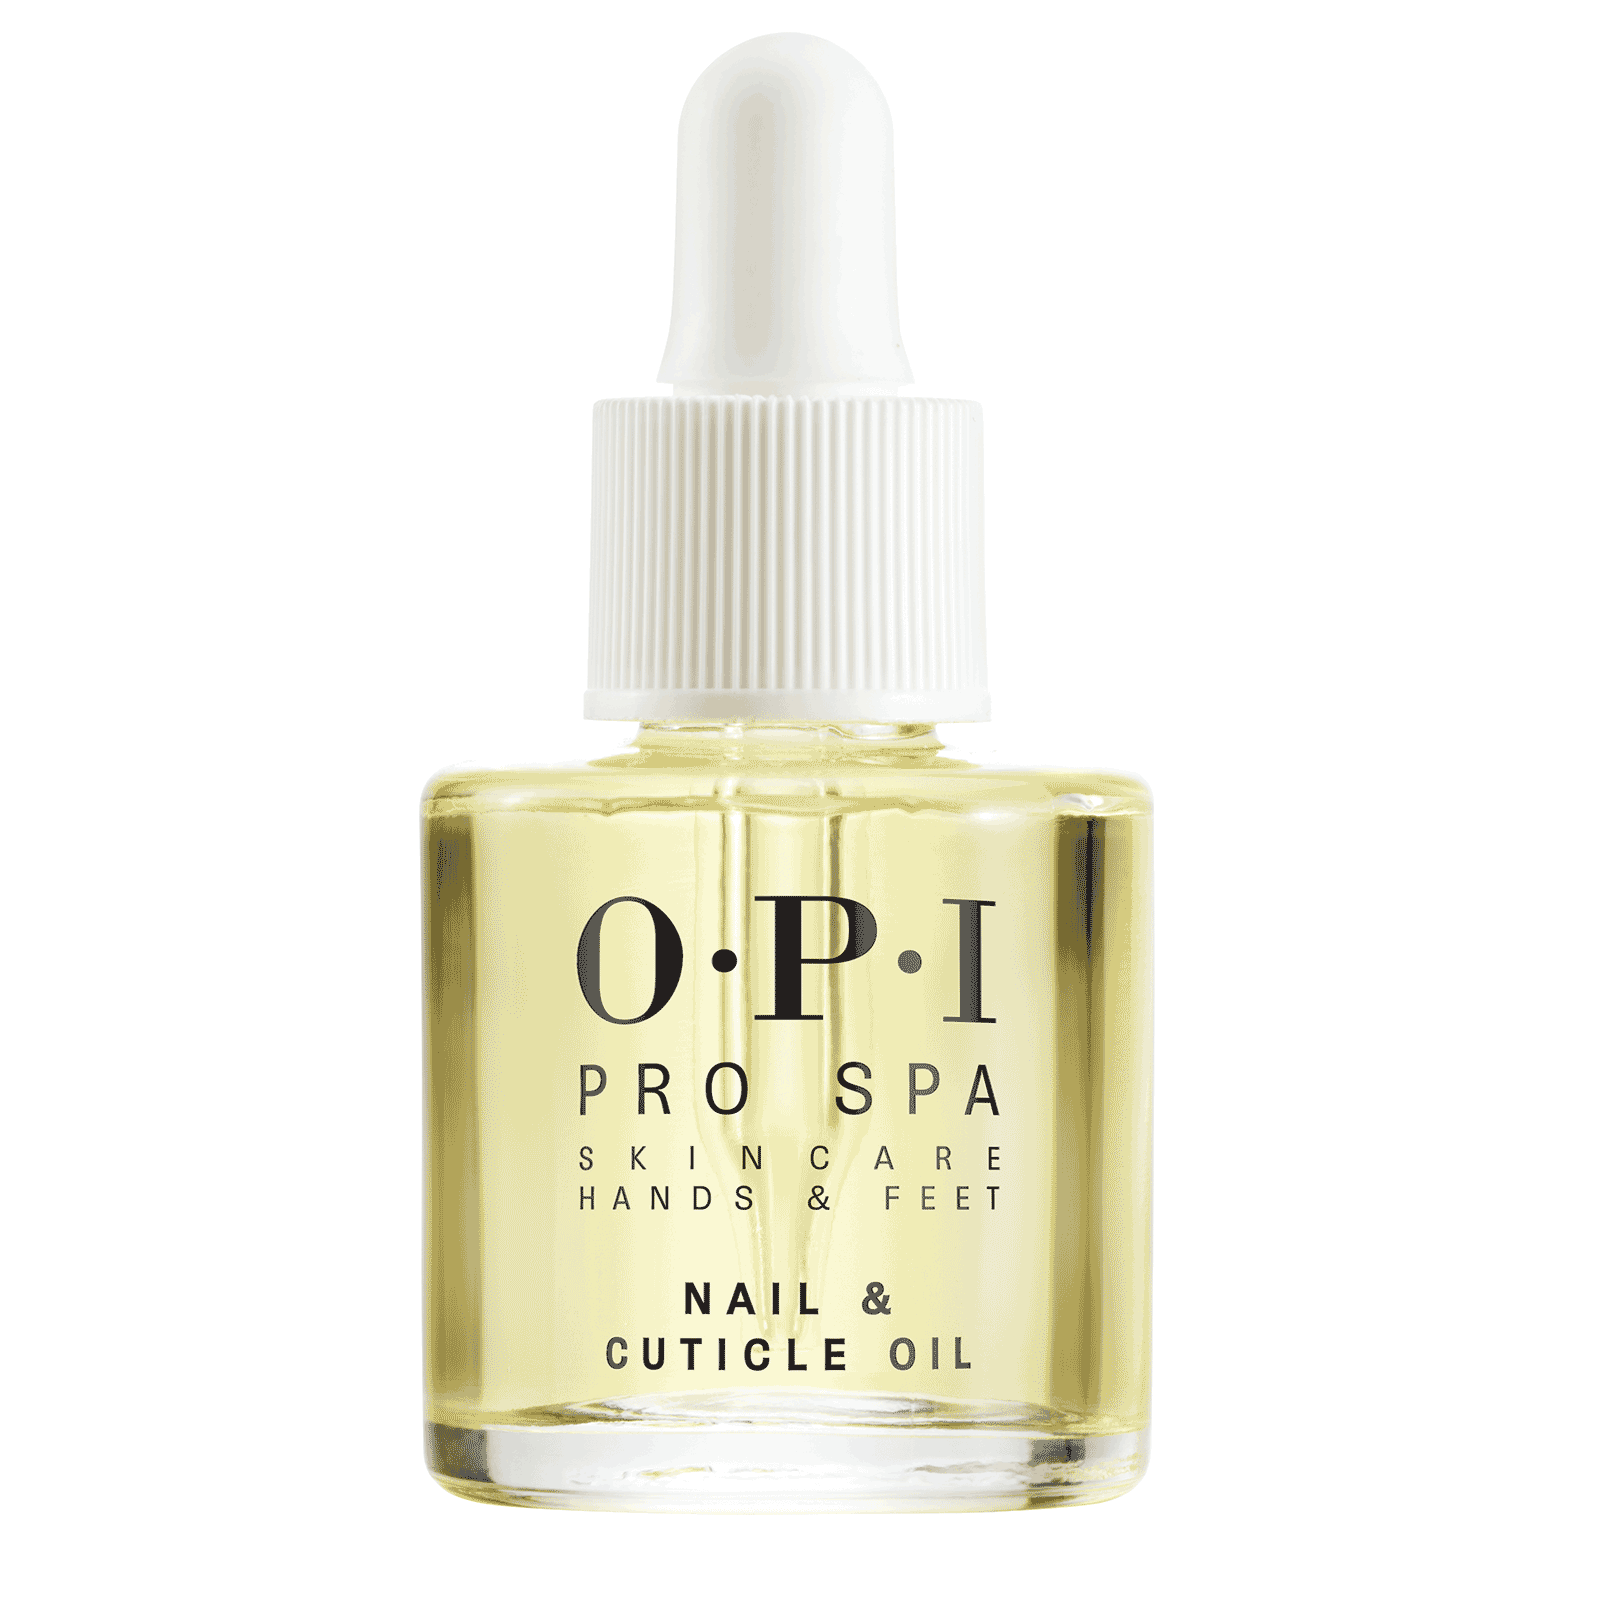 ProSpa Nail and Cuticle Oil - OPI | CosmoProf